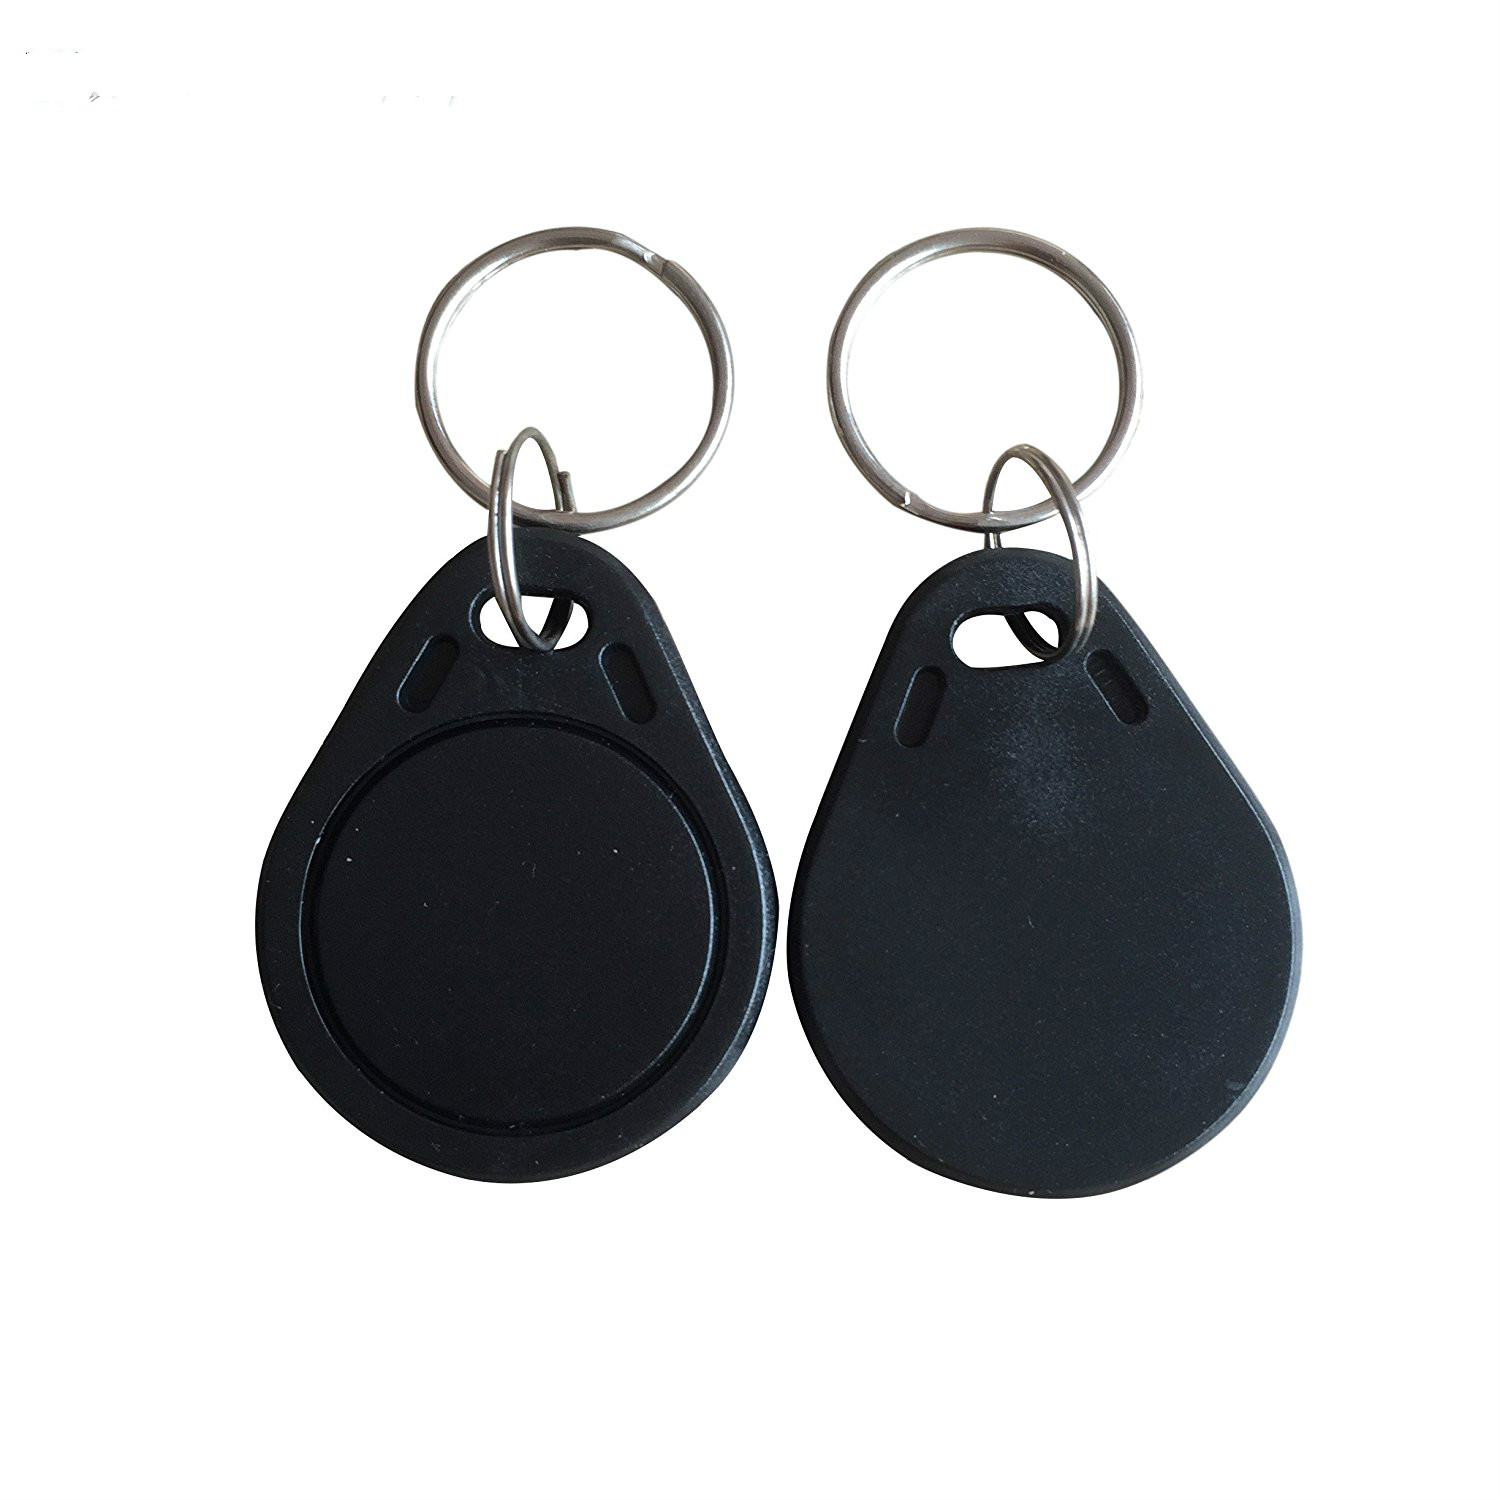 13.56MHz RFID Keychains ISO14443A RFID MF Classic 1K Keyfobs NFC Tag Black Colour key token for access control system 100PCS<br>